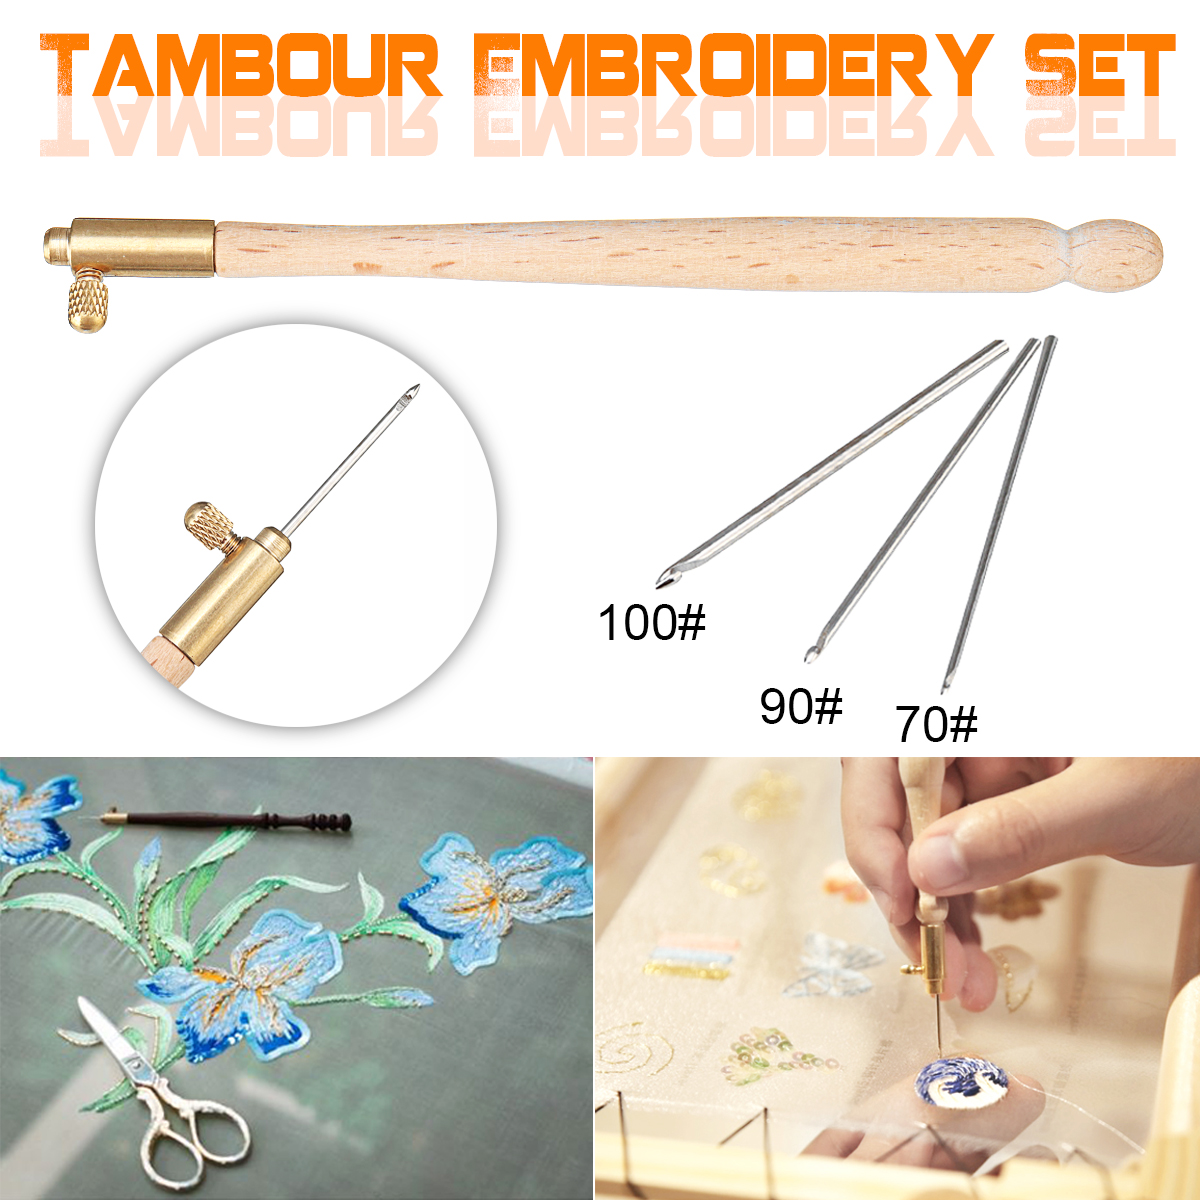 4 Pcs Needle Set 70 90-120 Wood Handle-Three Needles Tambour Embroidery Crochet Hook Toolkit